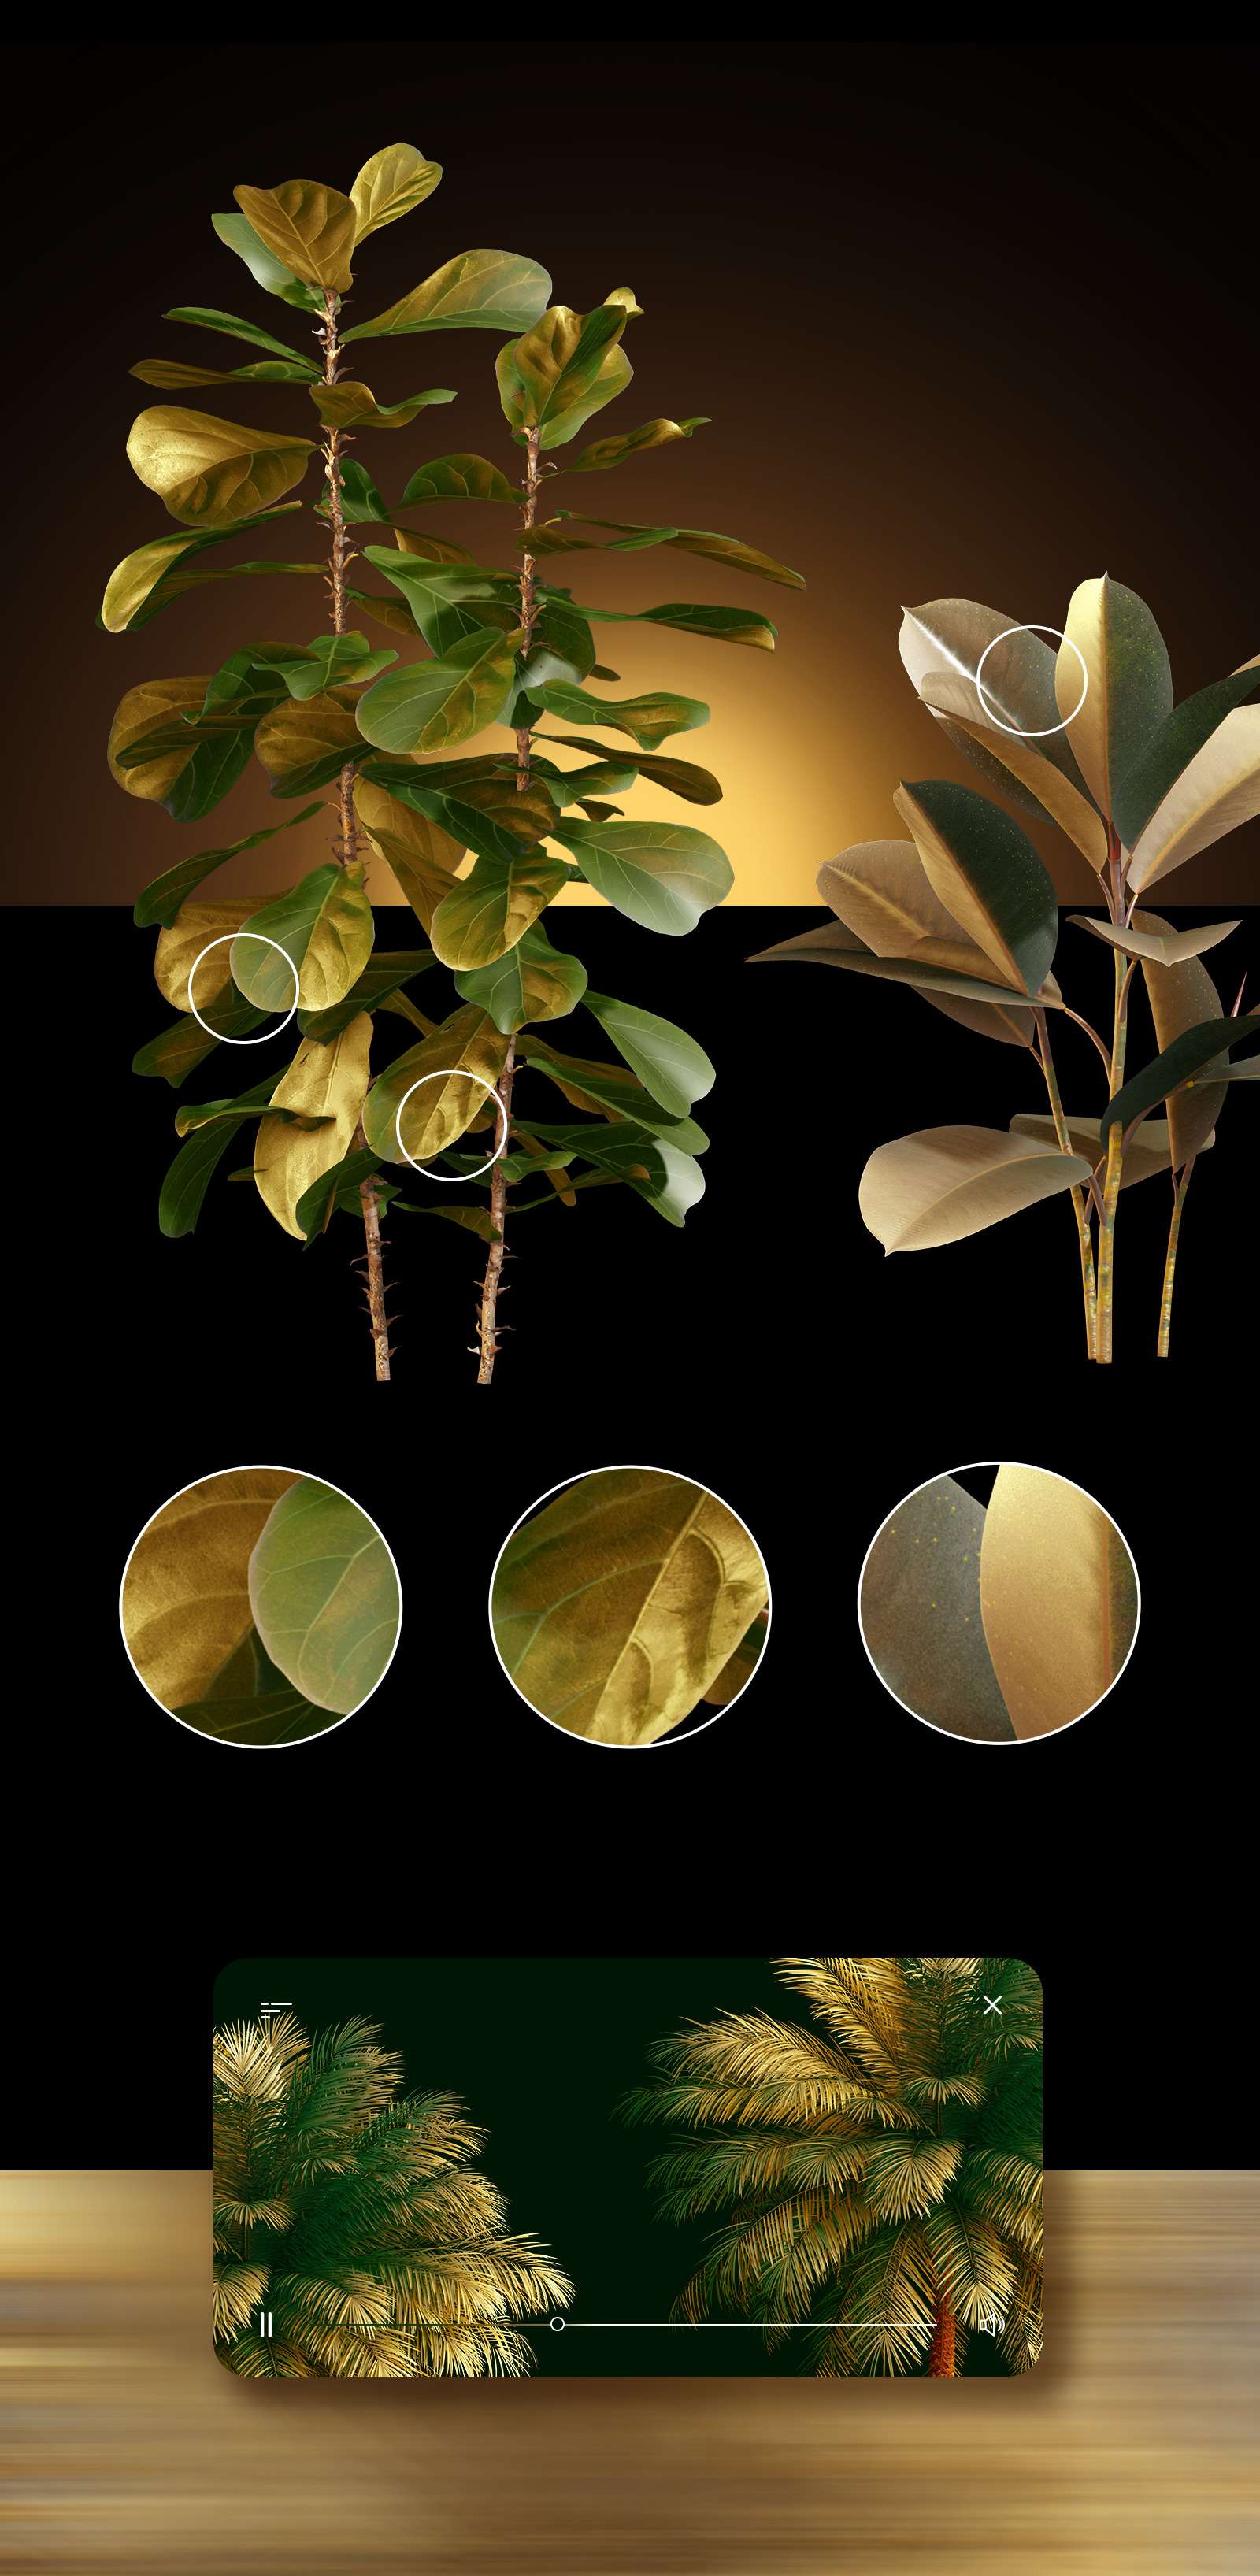 GOLD plants & stones collection #06